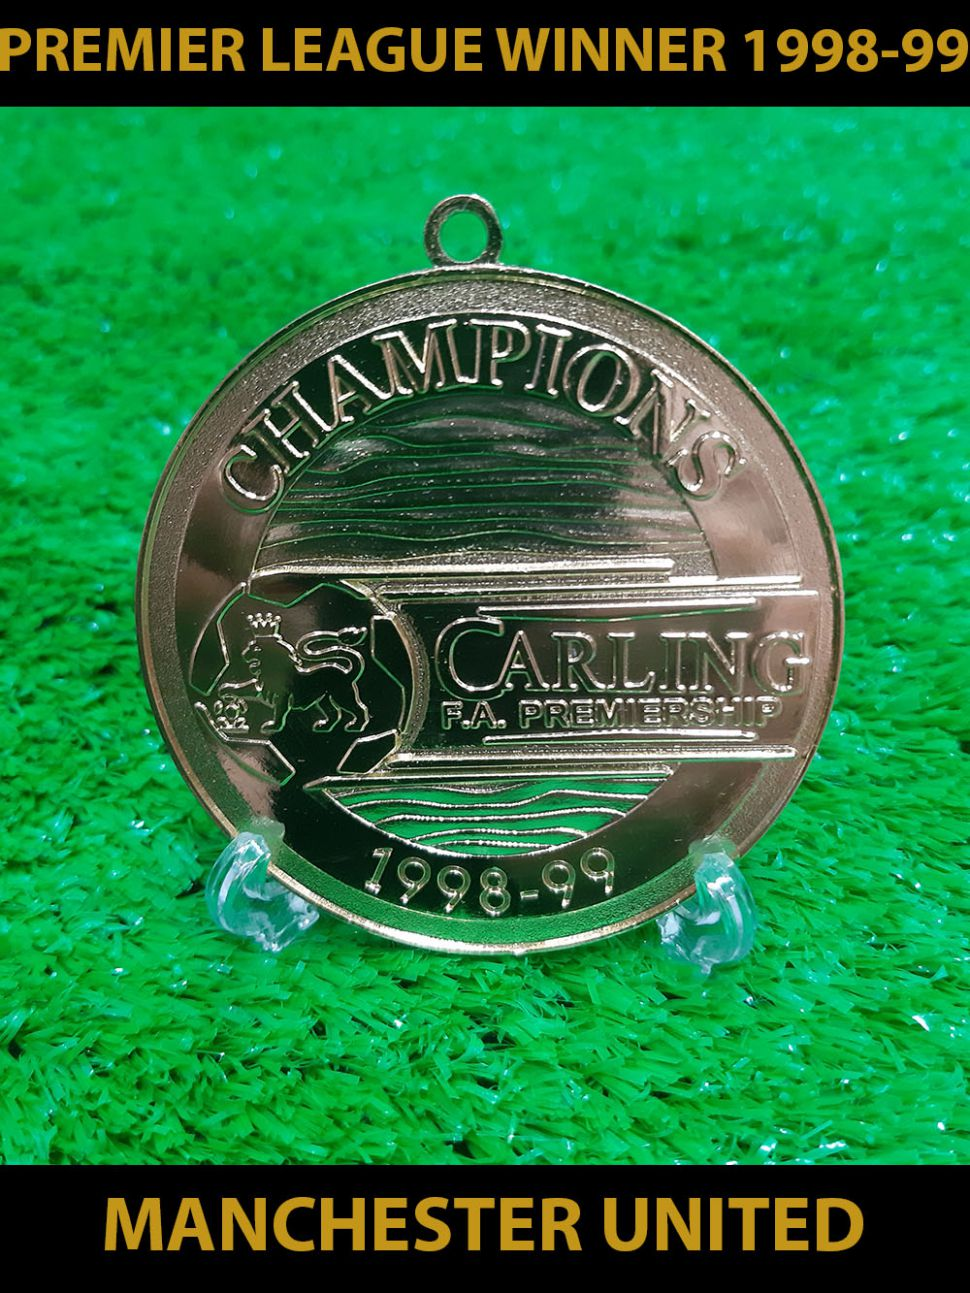 1998-1999 Premiership Manchester United champion winner medal gold